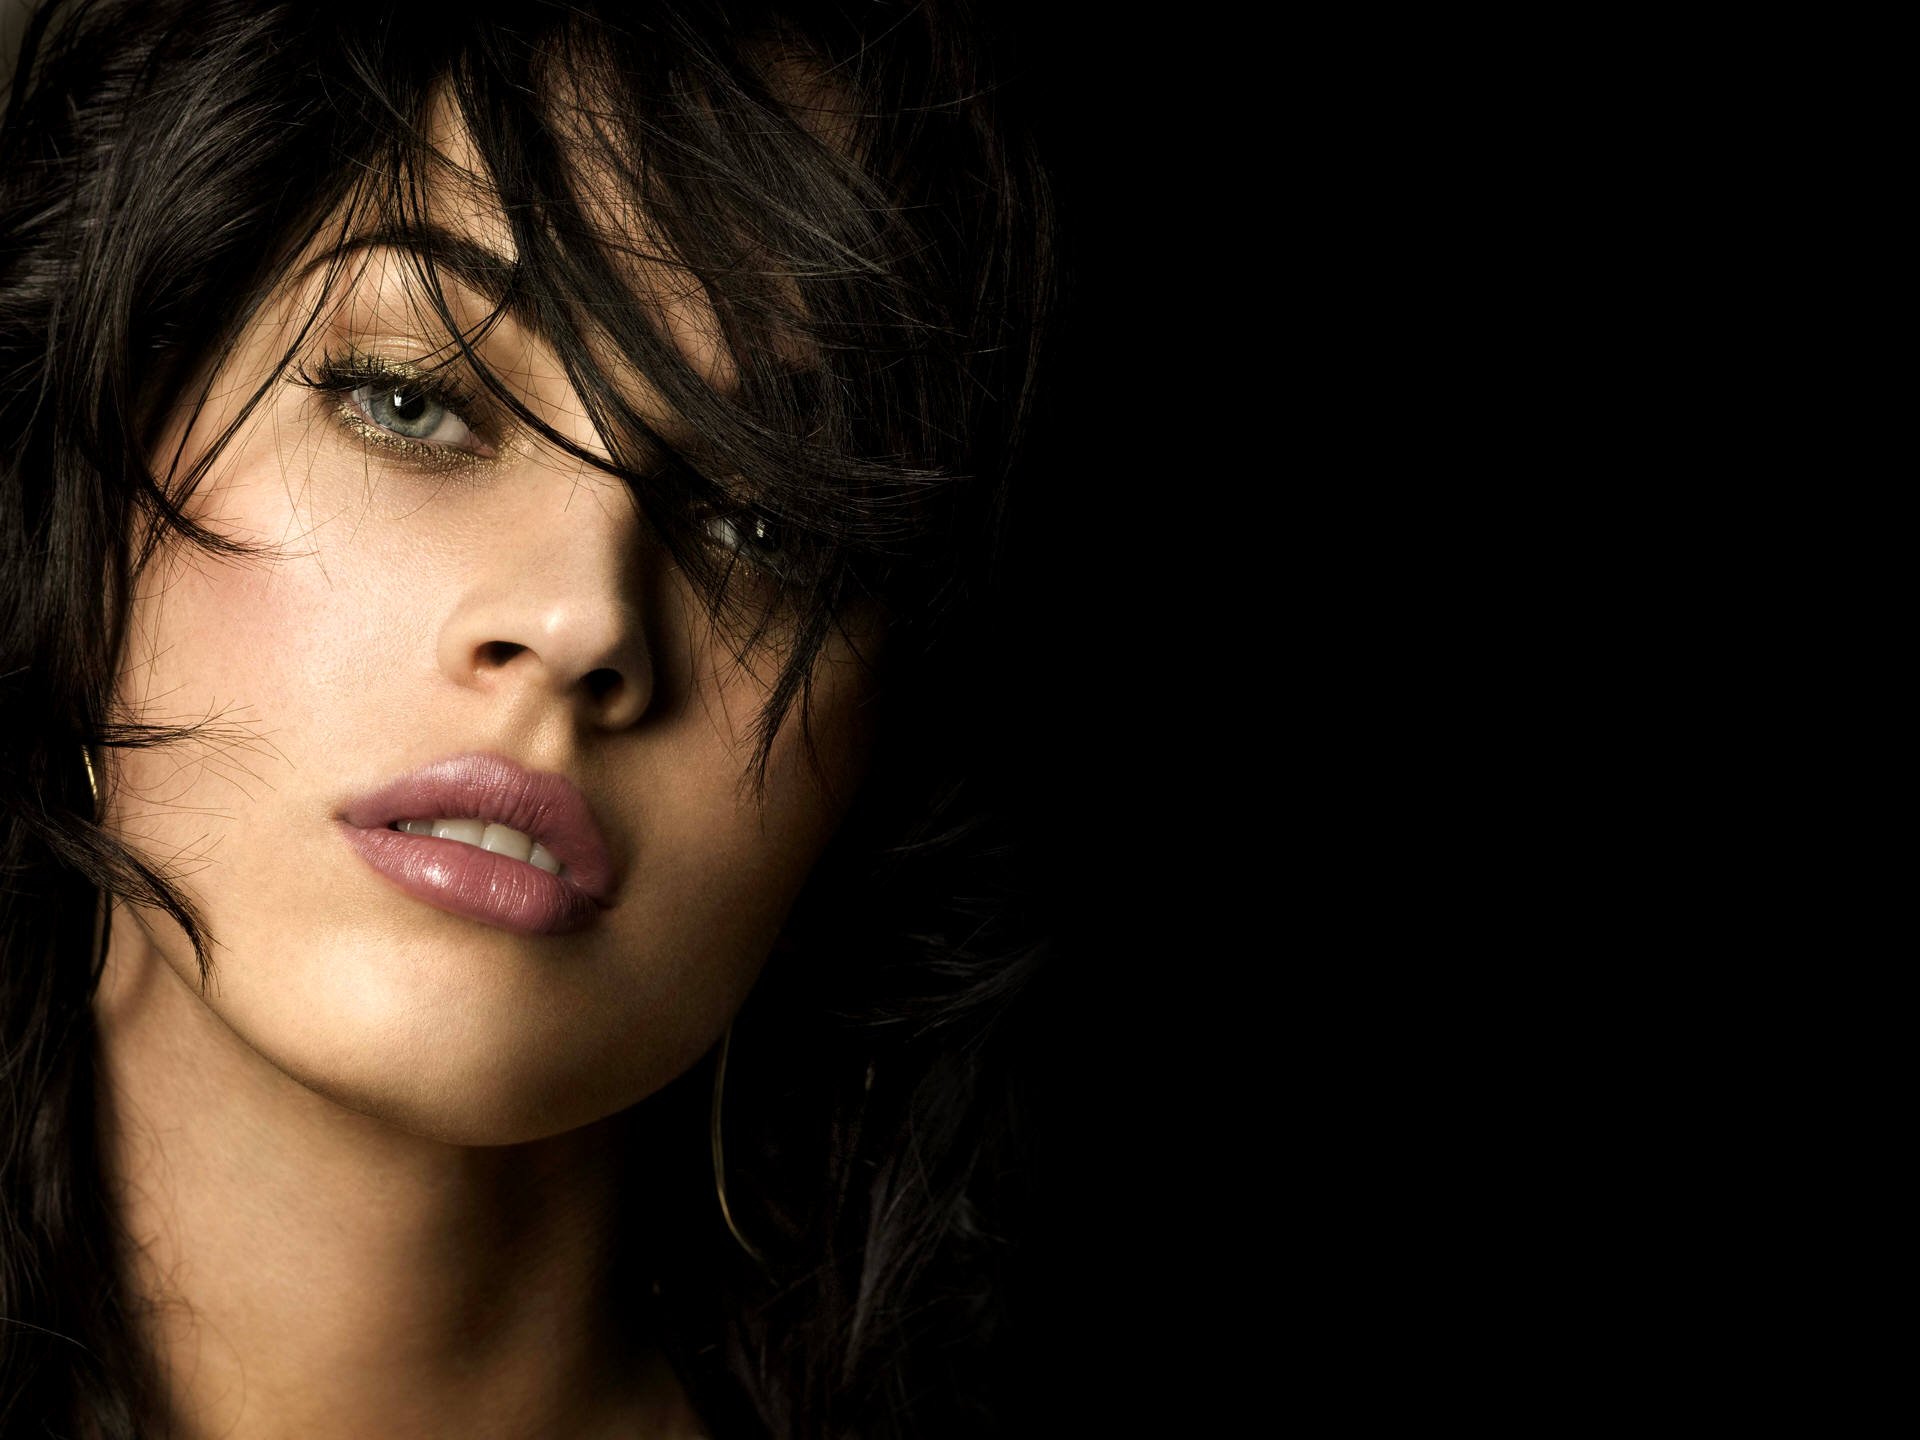 Megan fox beautiful eyes 12812 10 Hot Megan Fox Wallpapers